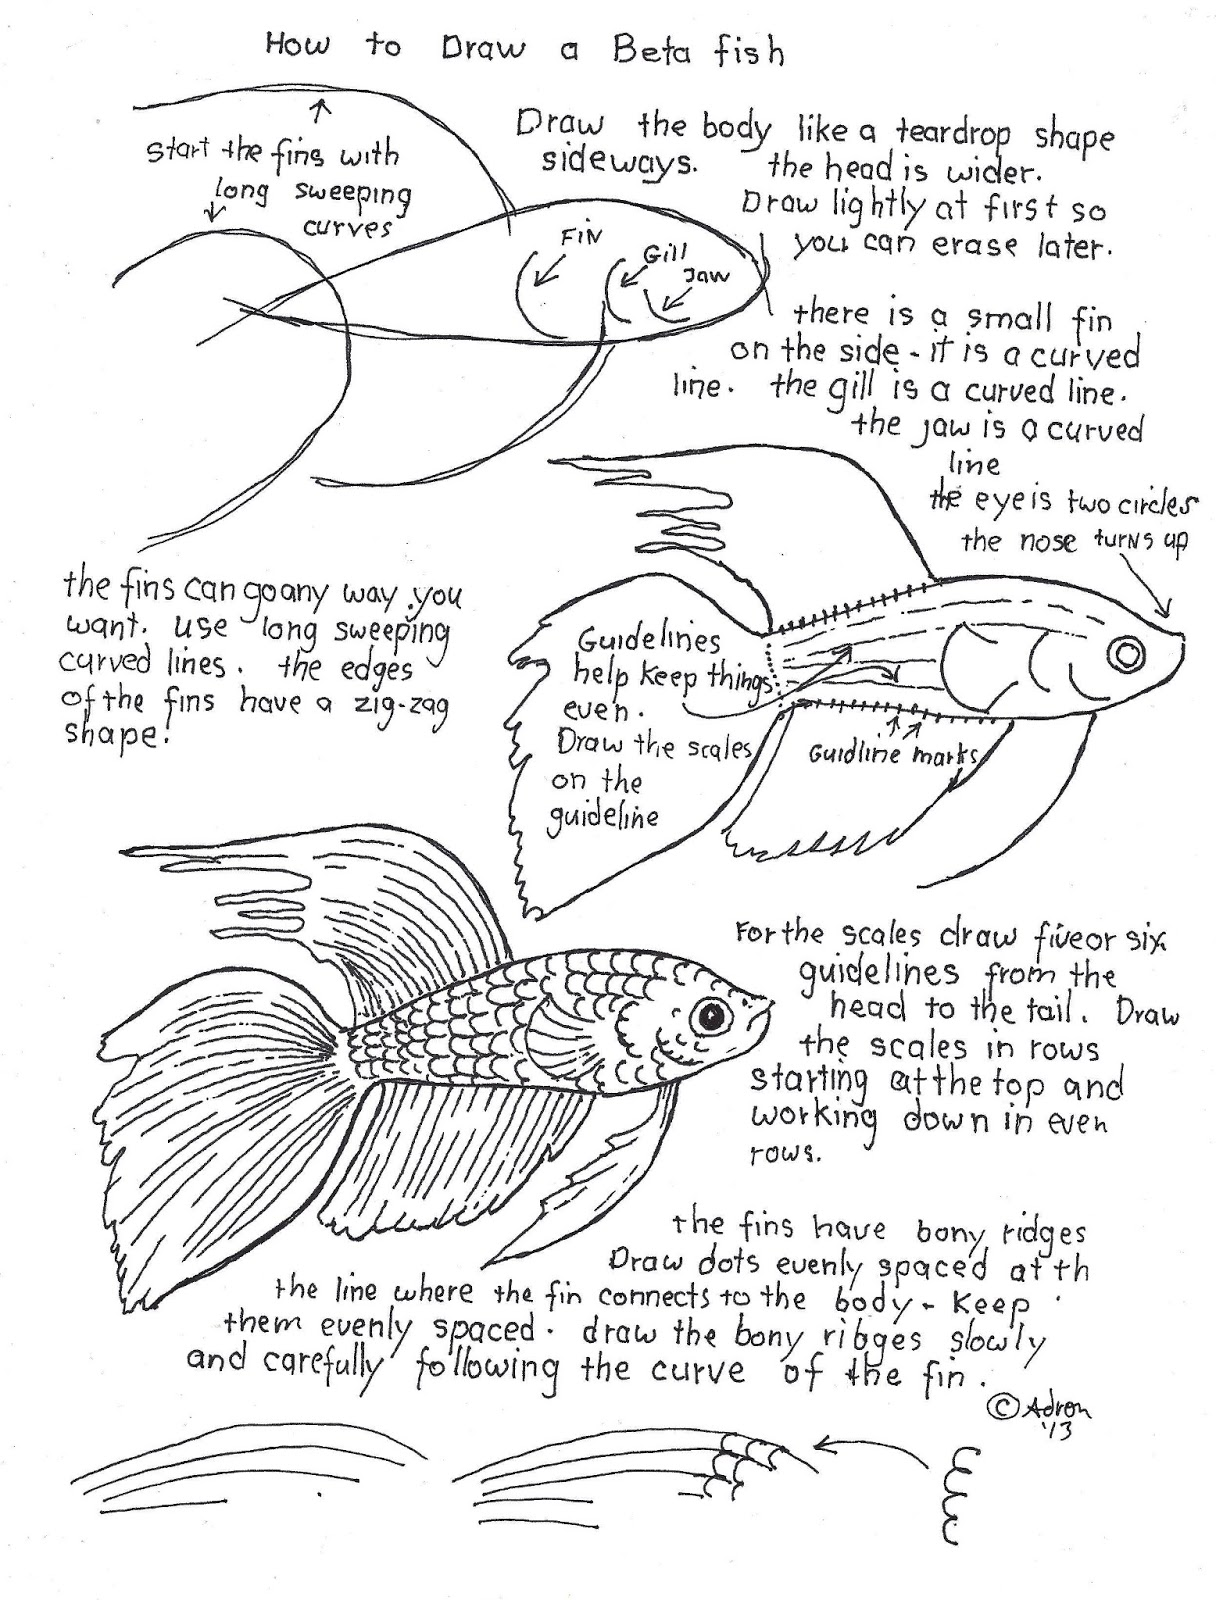 Uncategorized Fish Anatomy Worksheet how to draw worksheets for the young artist a beta fish worksheet